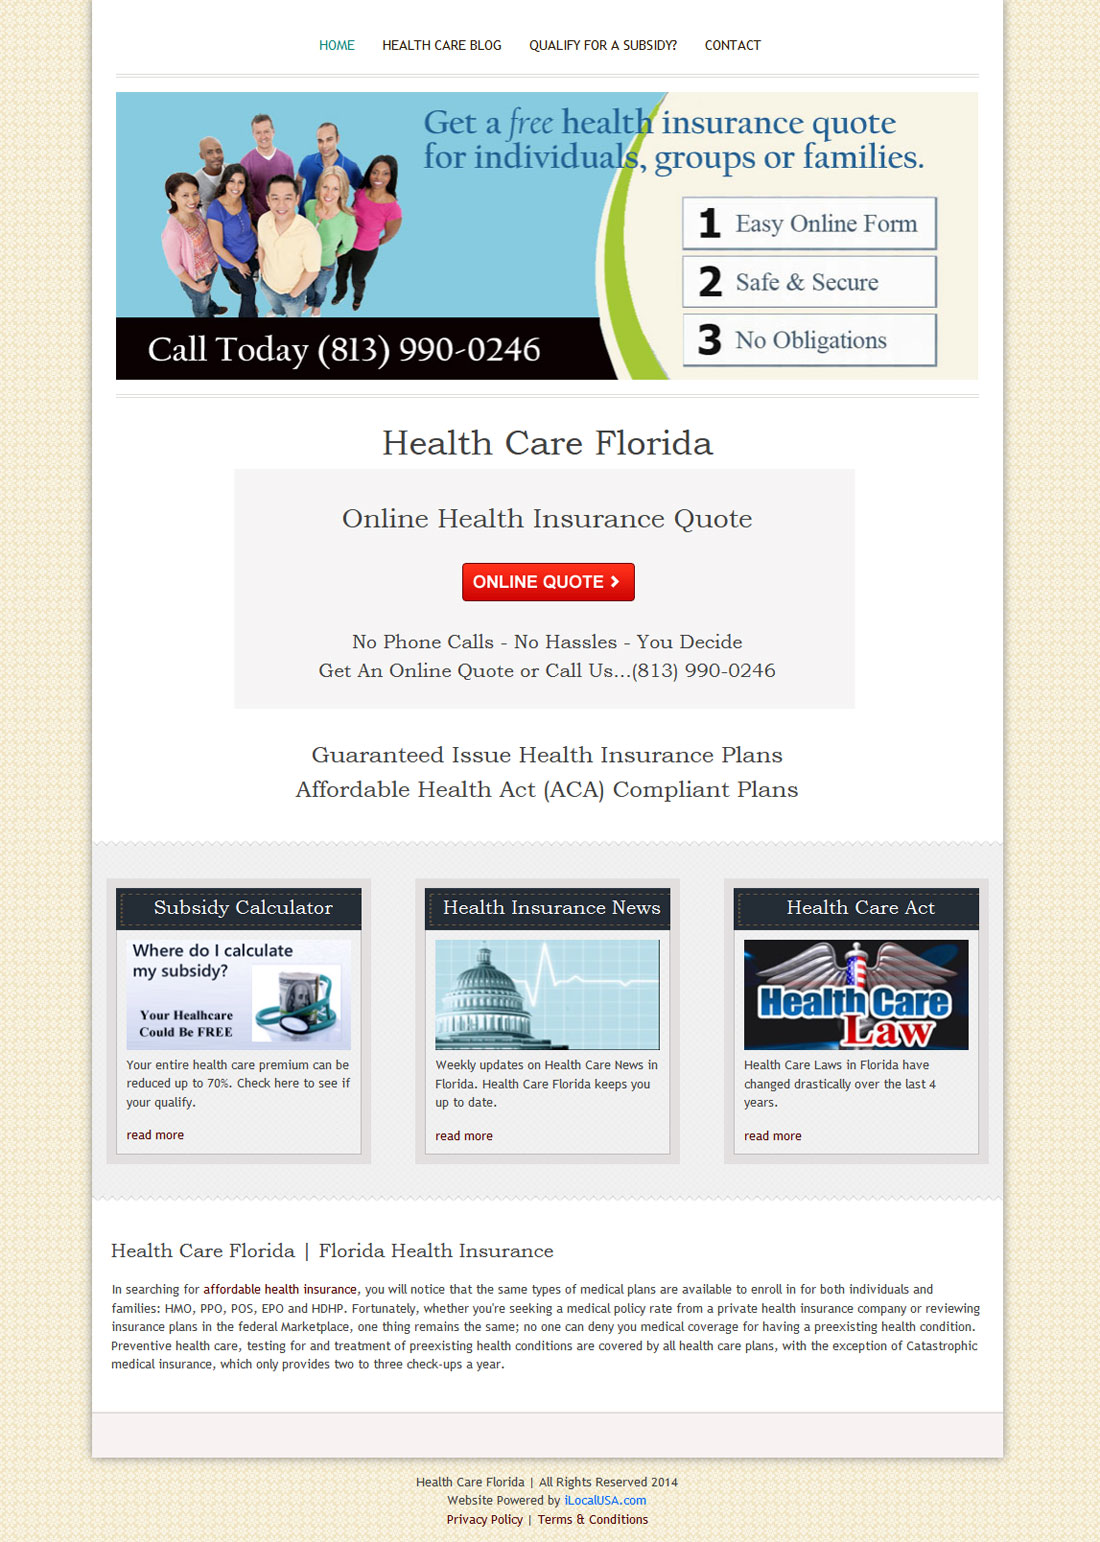 Health Care Florida Insurance Website